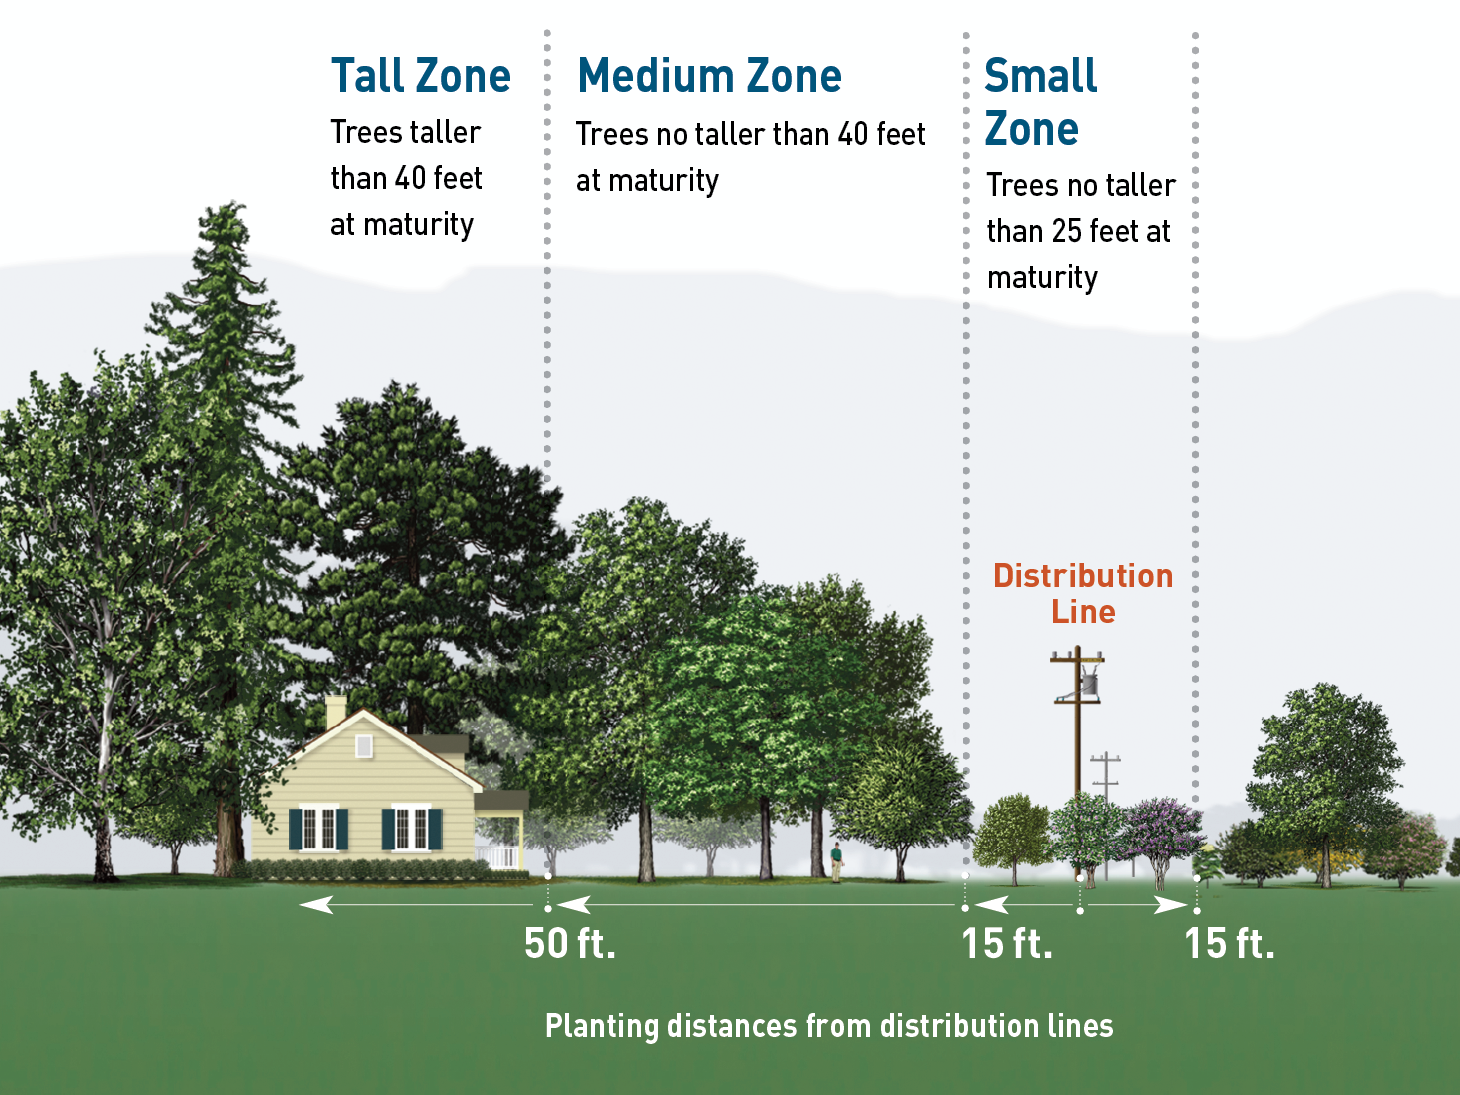 PG&E's right tree, right place guidelines